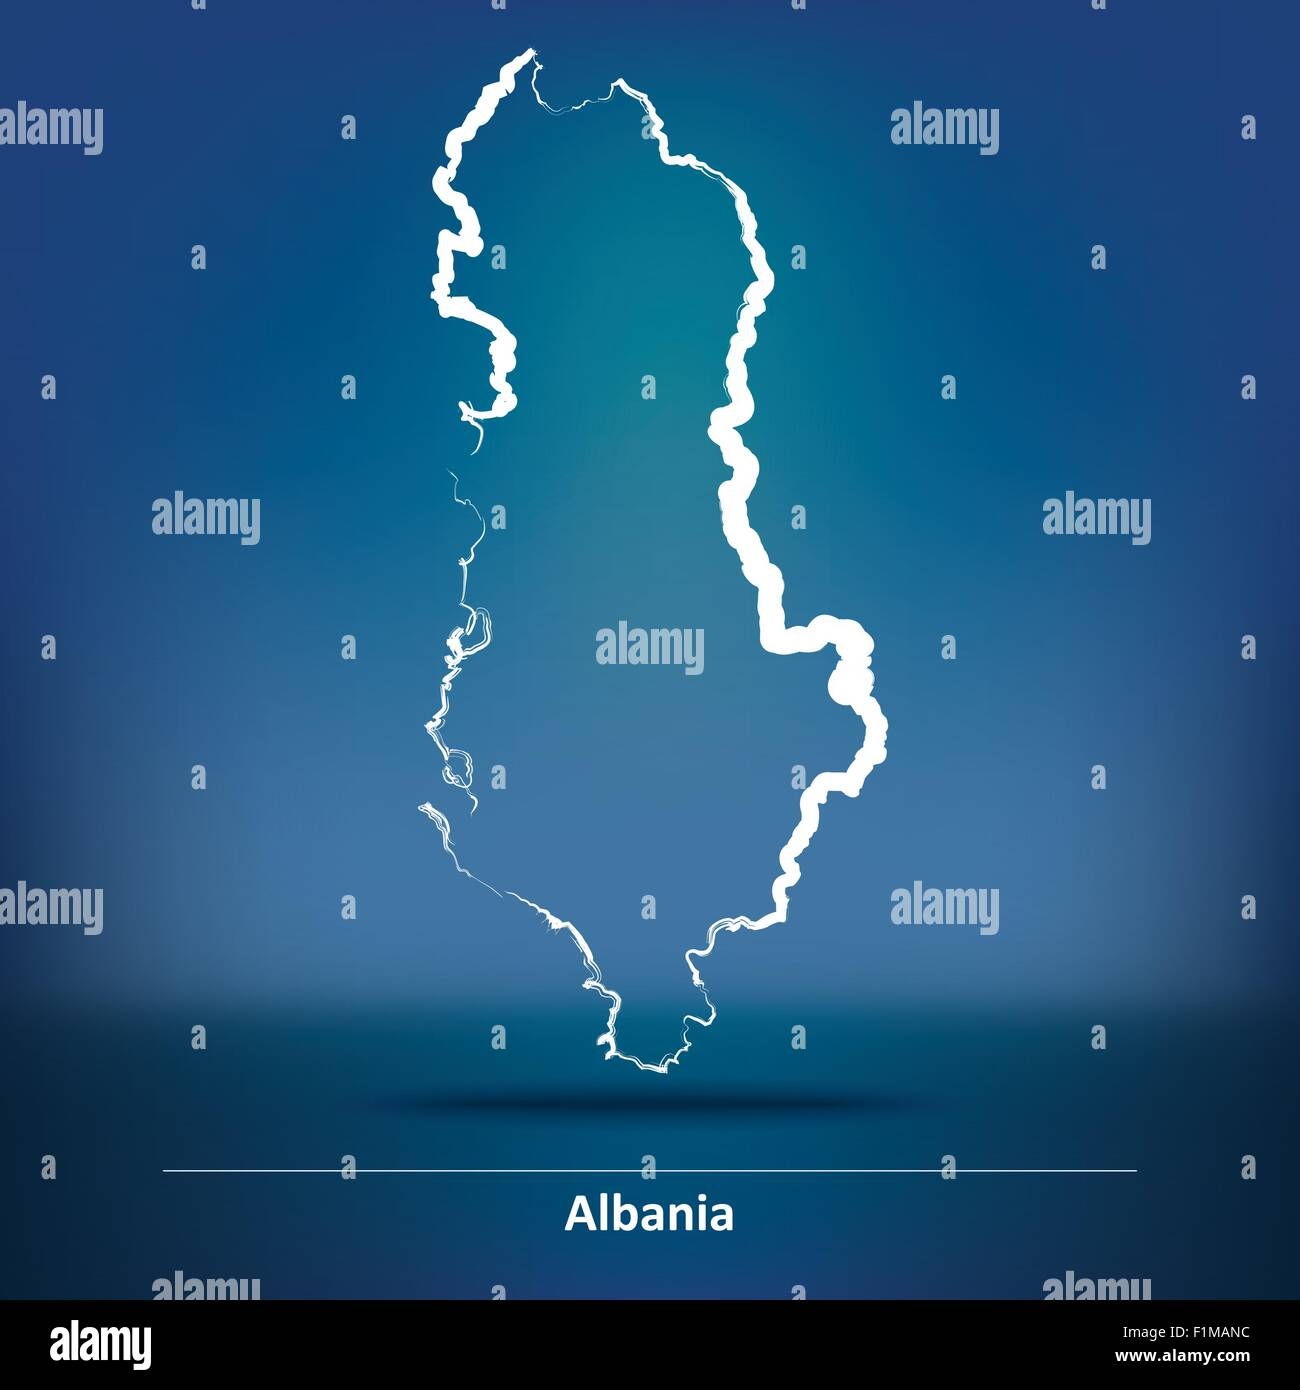 Doodle Map of Albania - vector illustration - Stock Vector